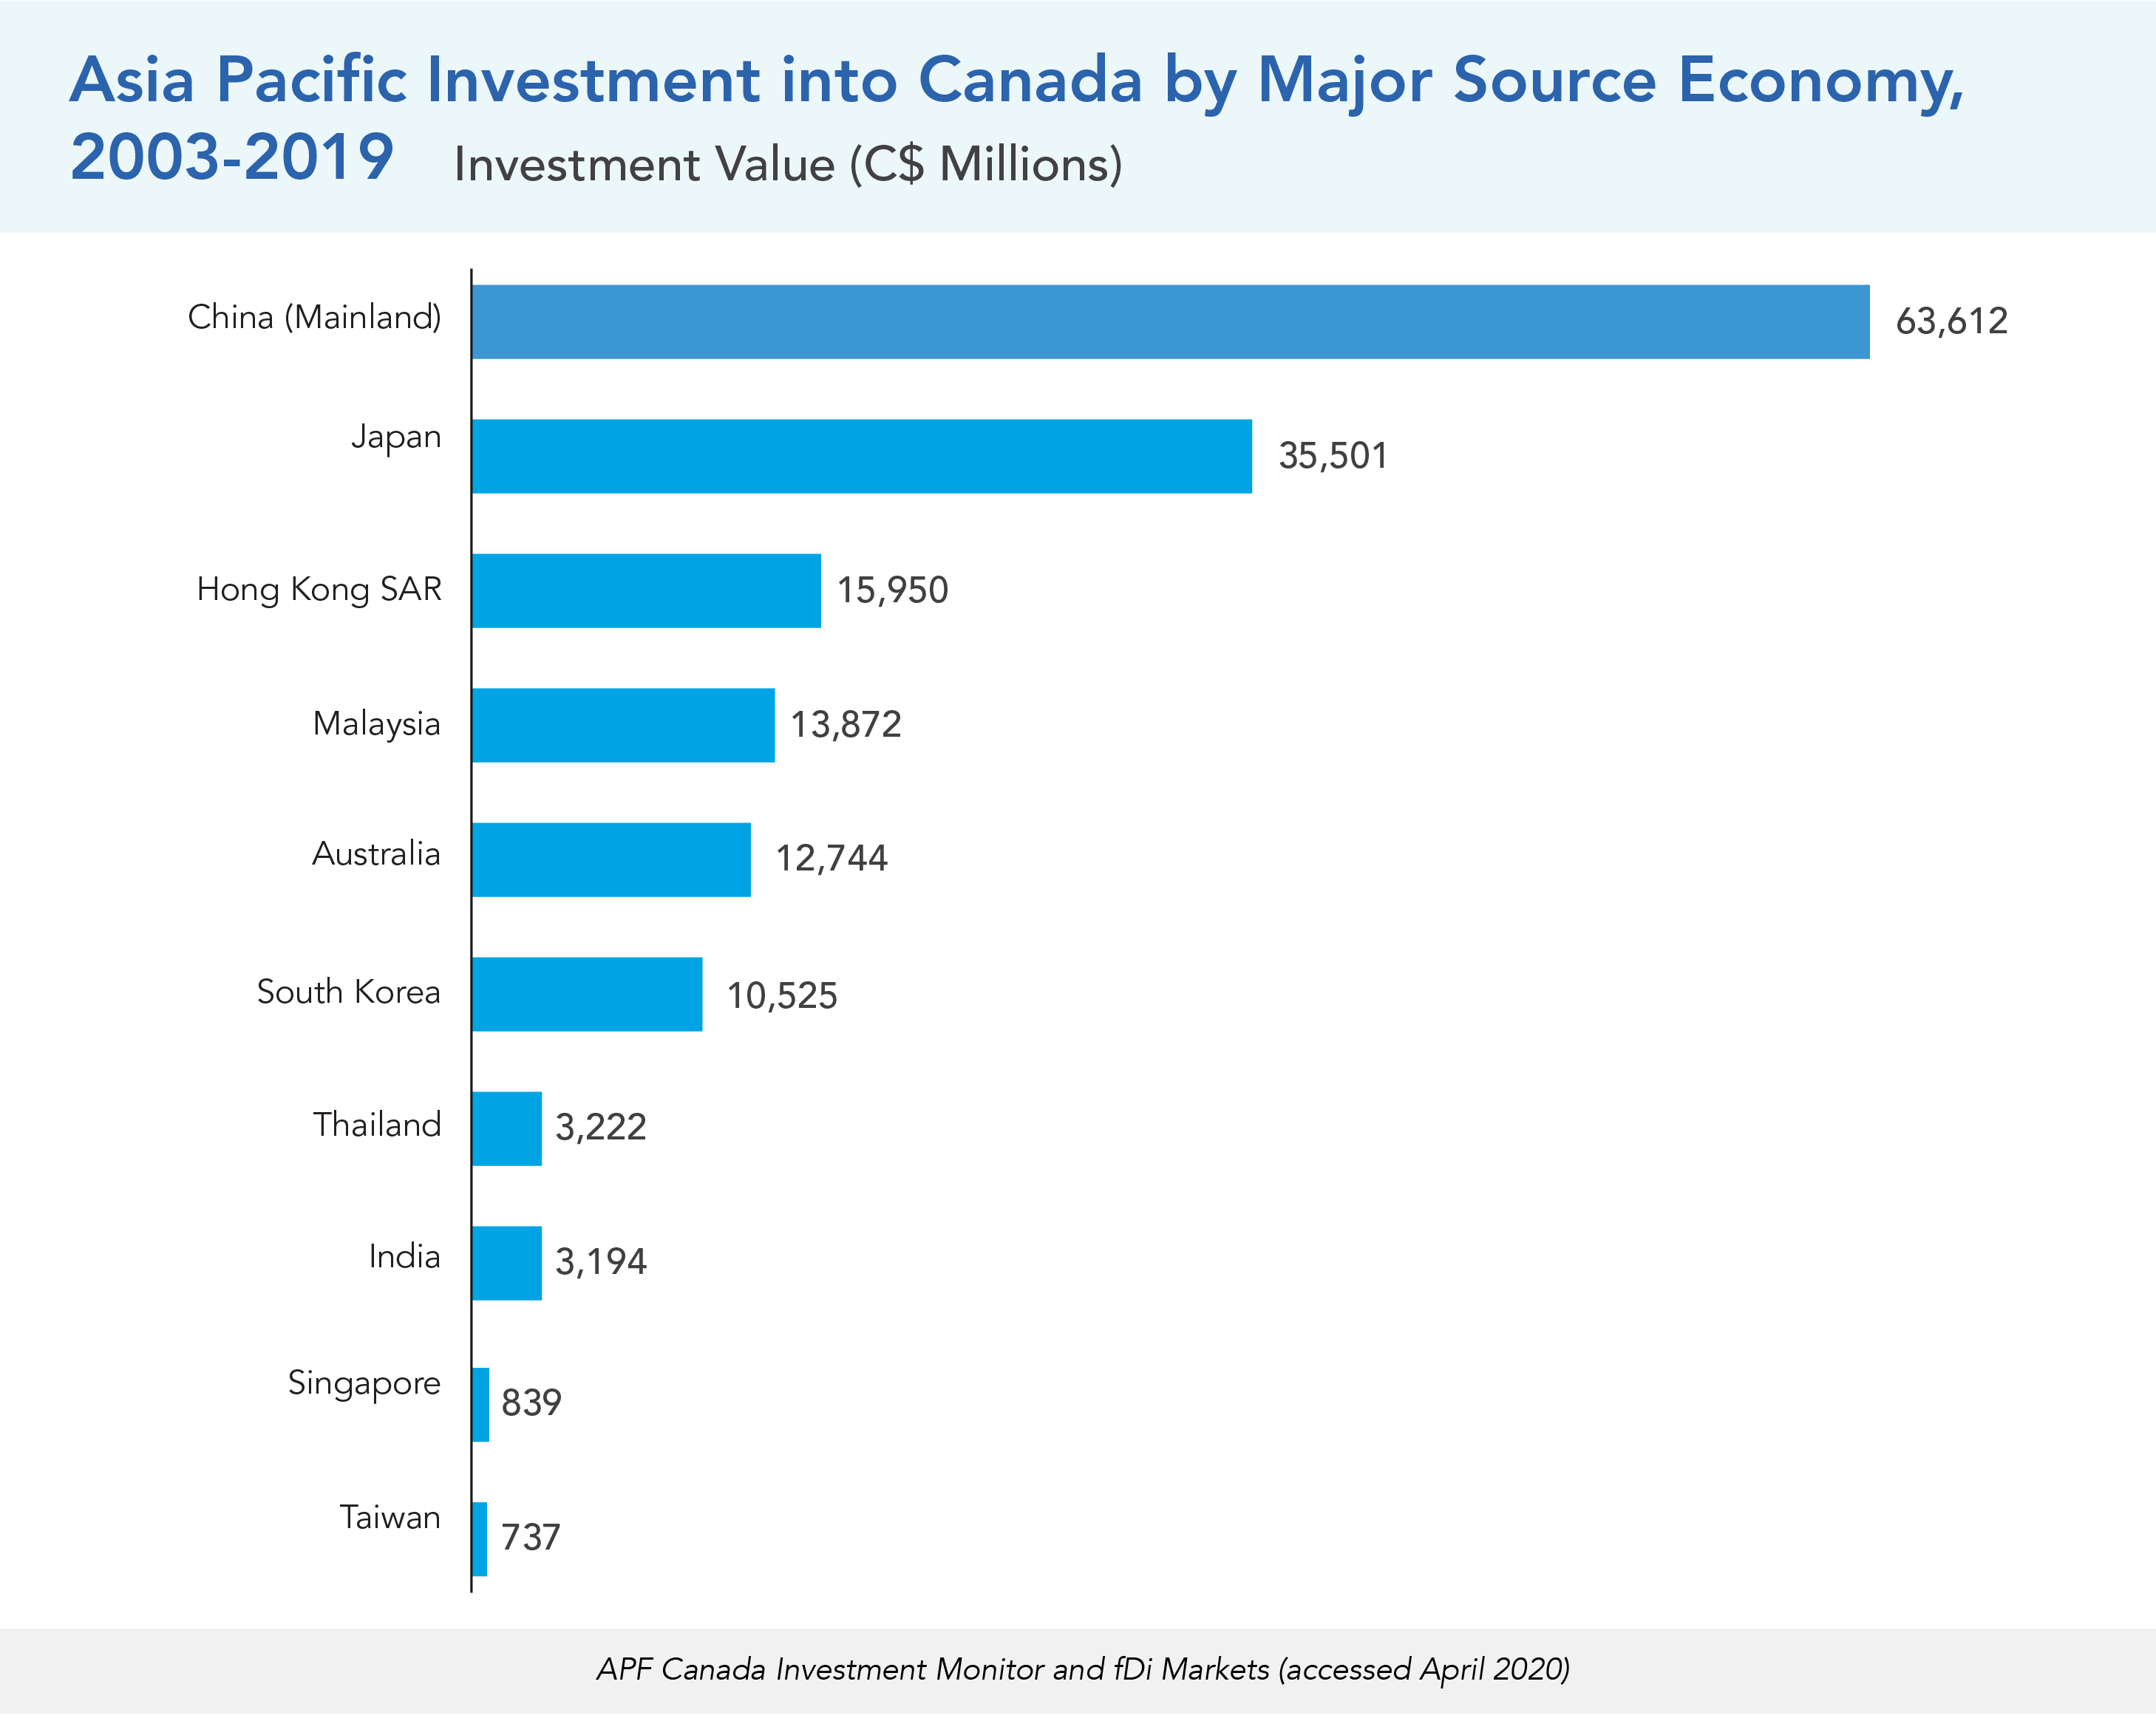 Asia Pacific Investment into Canada by Major Source Economy, 2003-2019